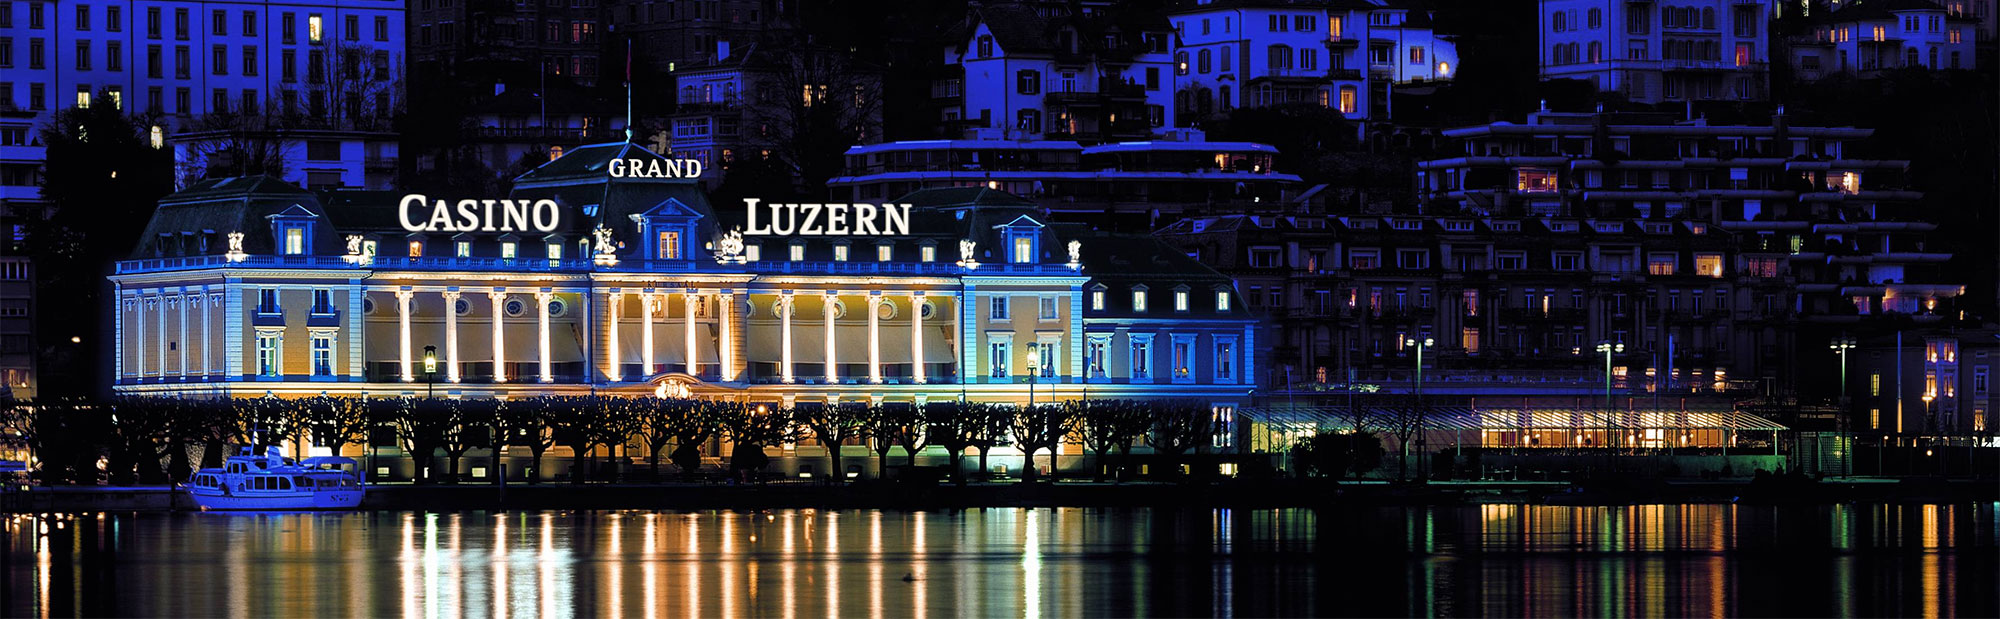 Grand Casino Luzern